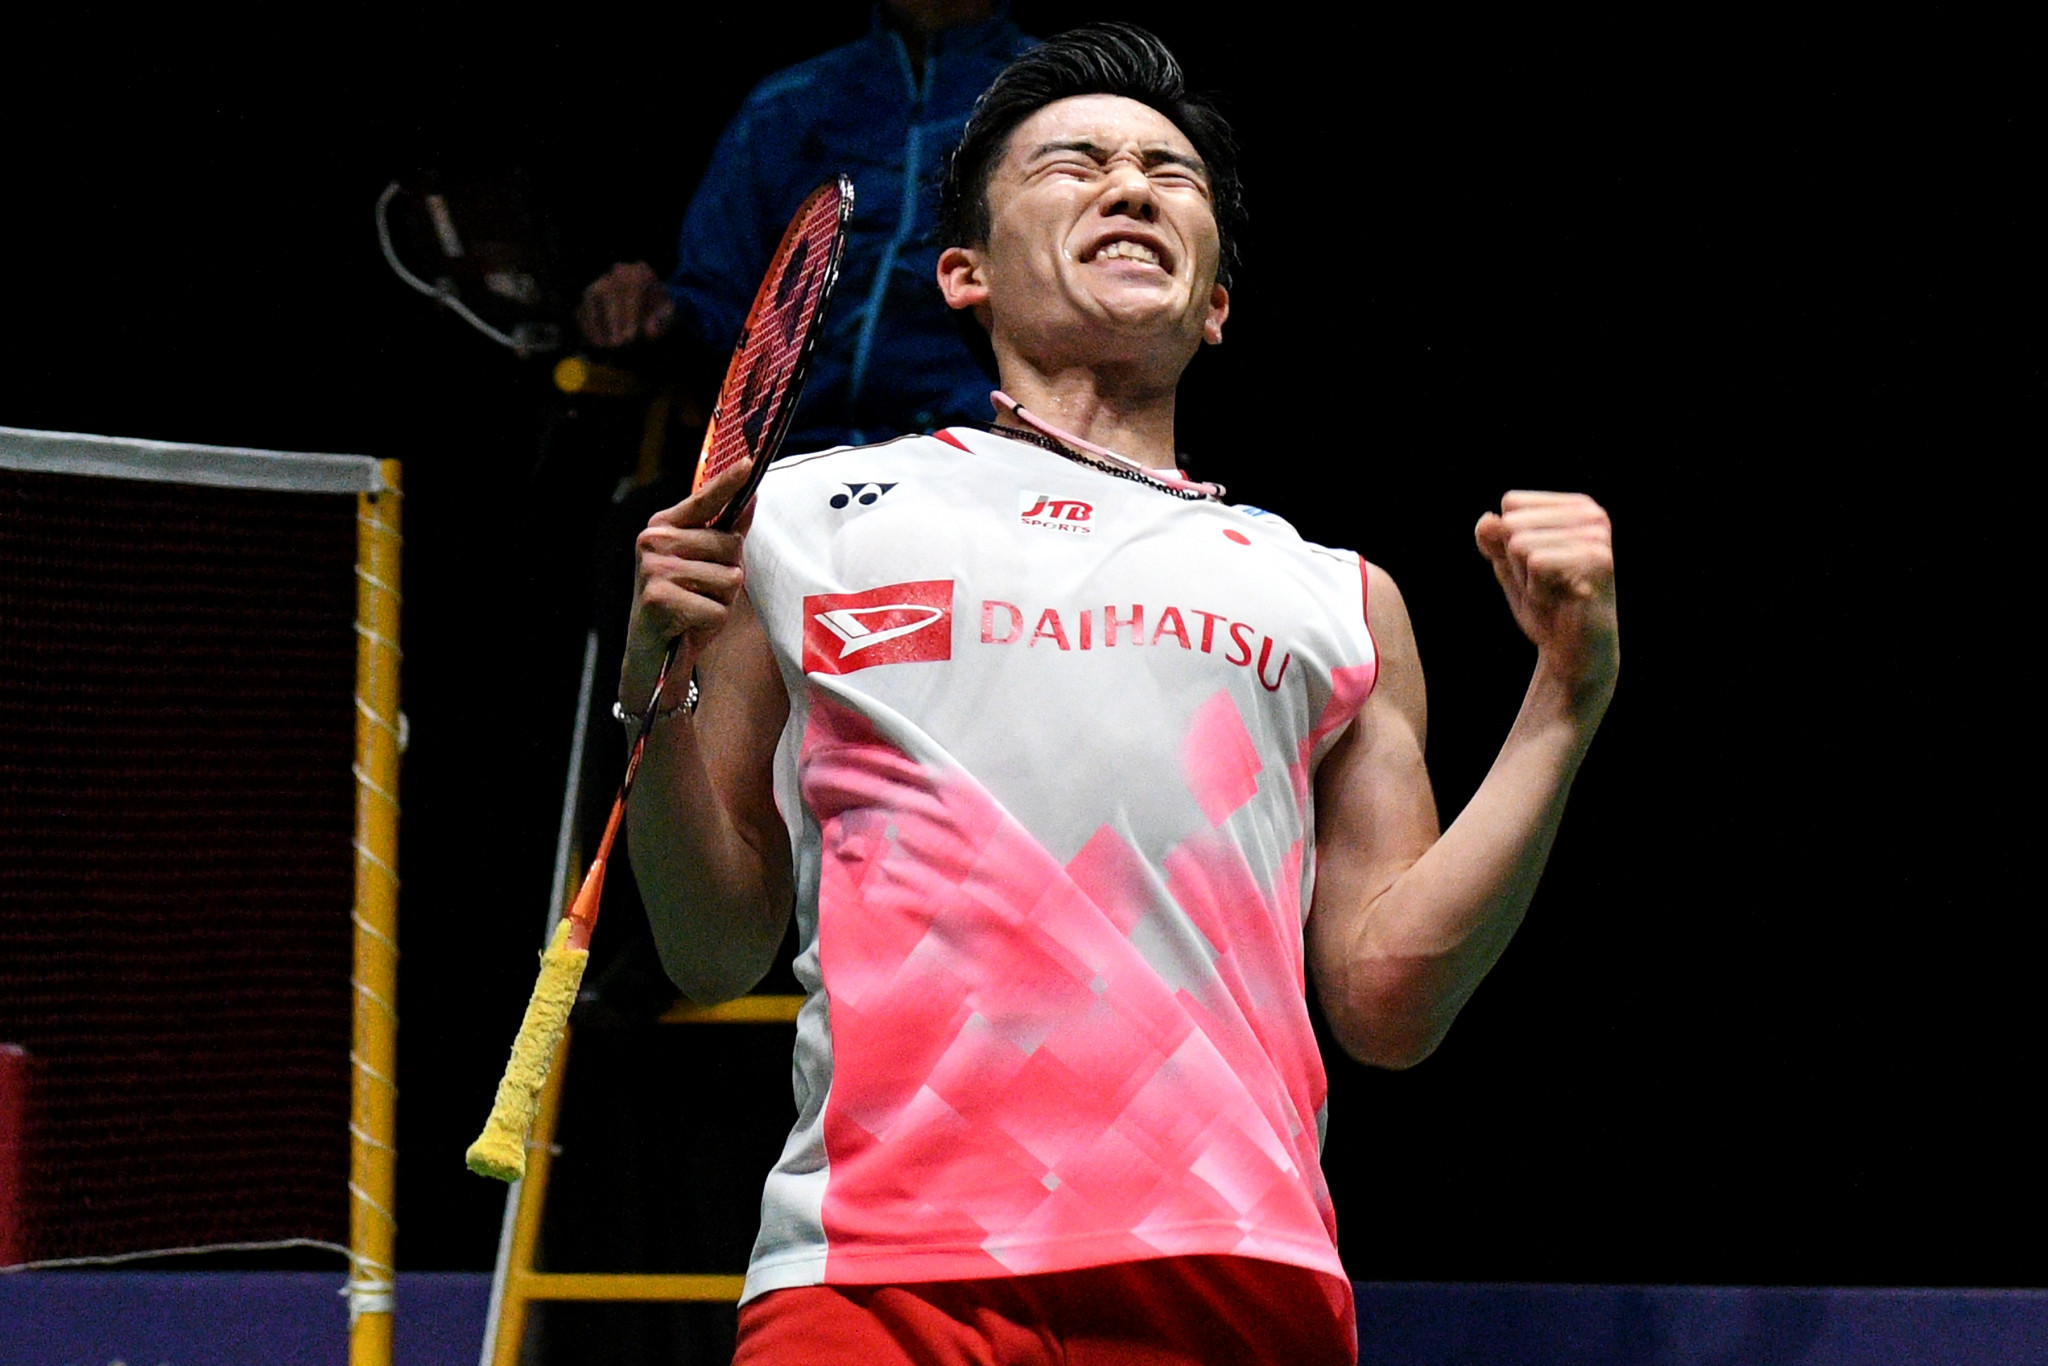 Japan's Tokyo 2020 hope Momota faces further three months out after facial surgery